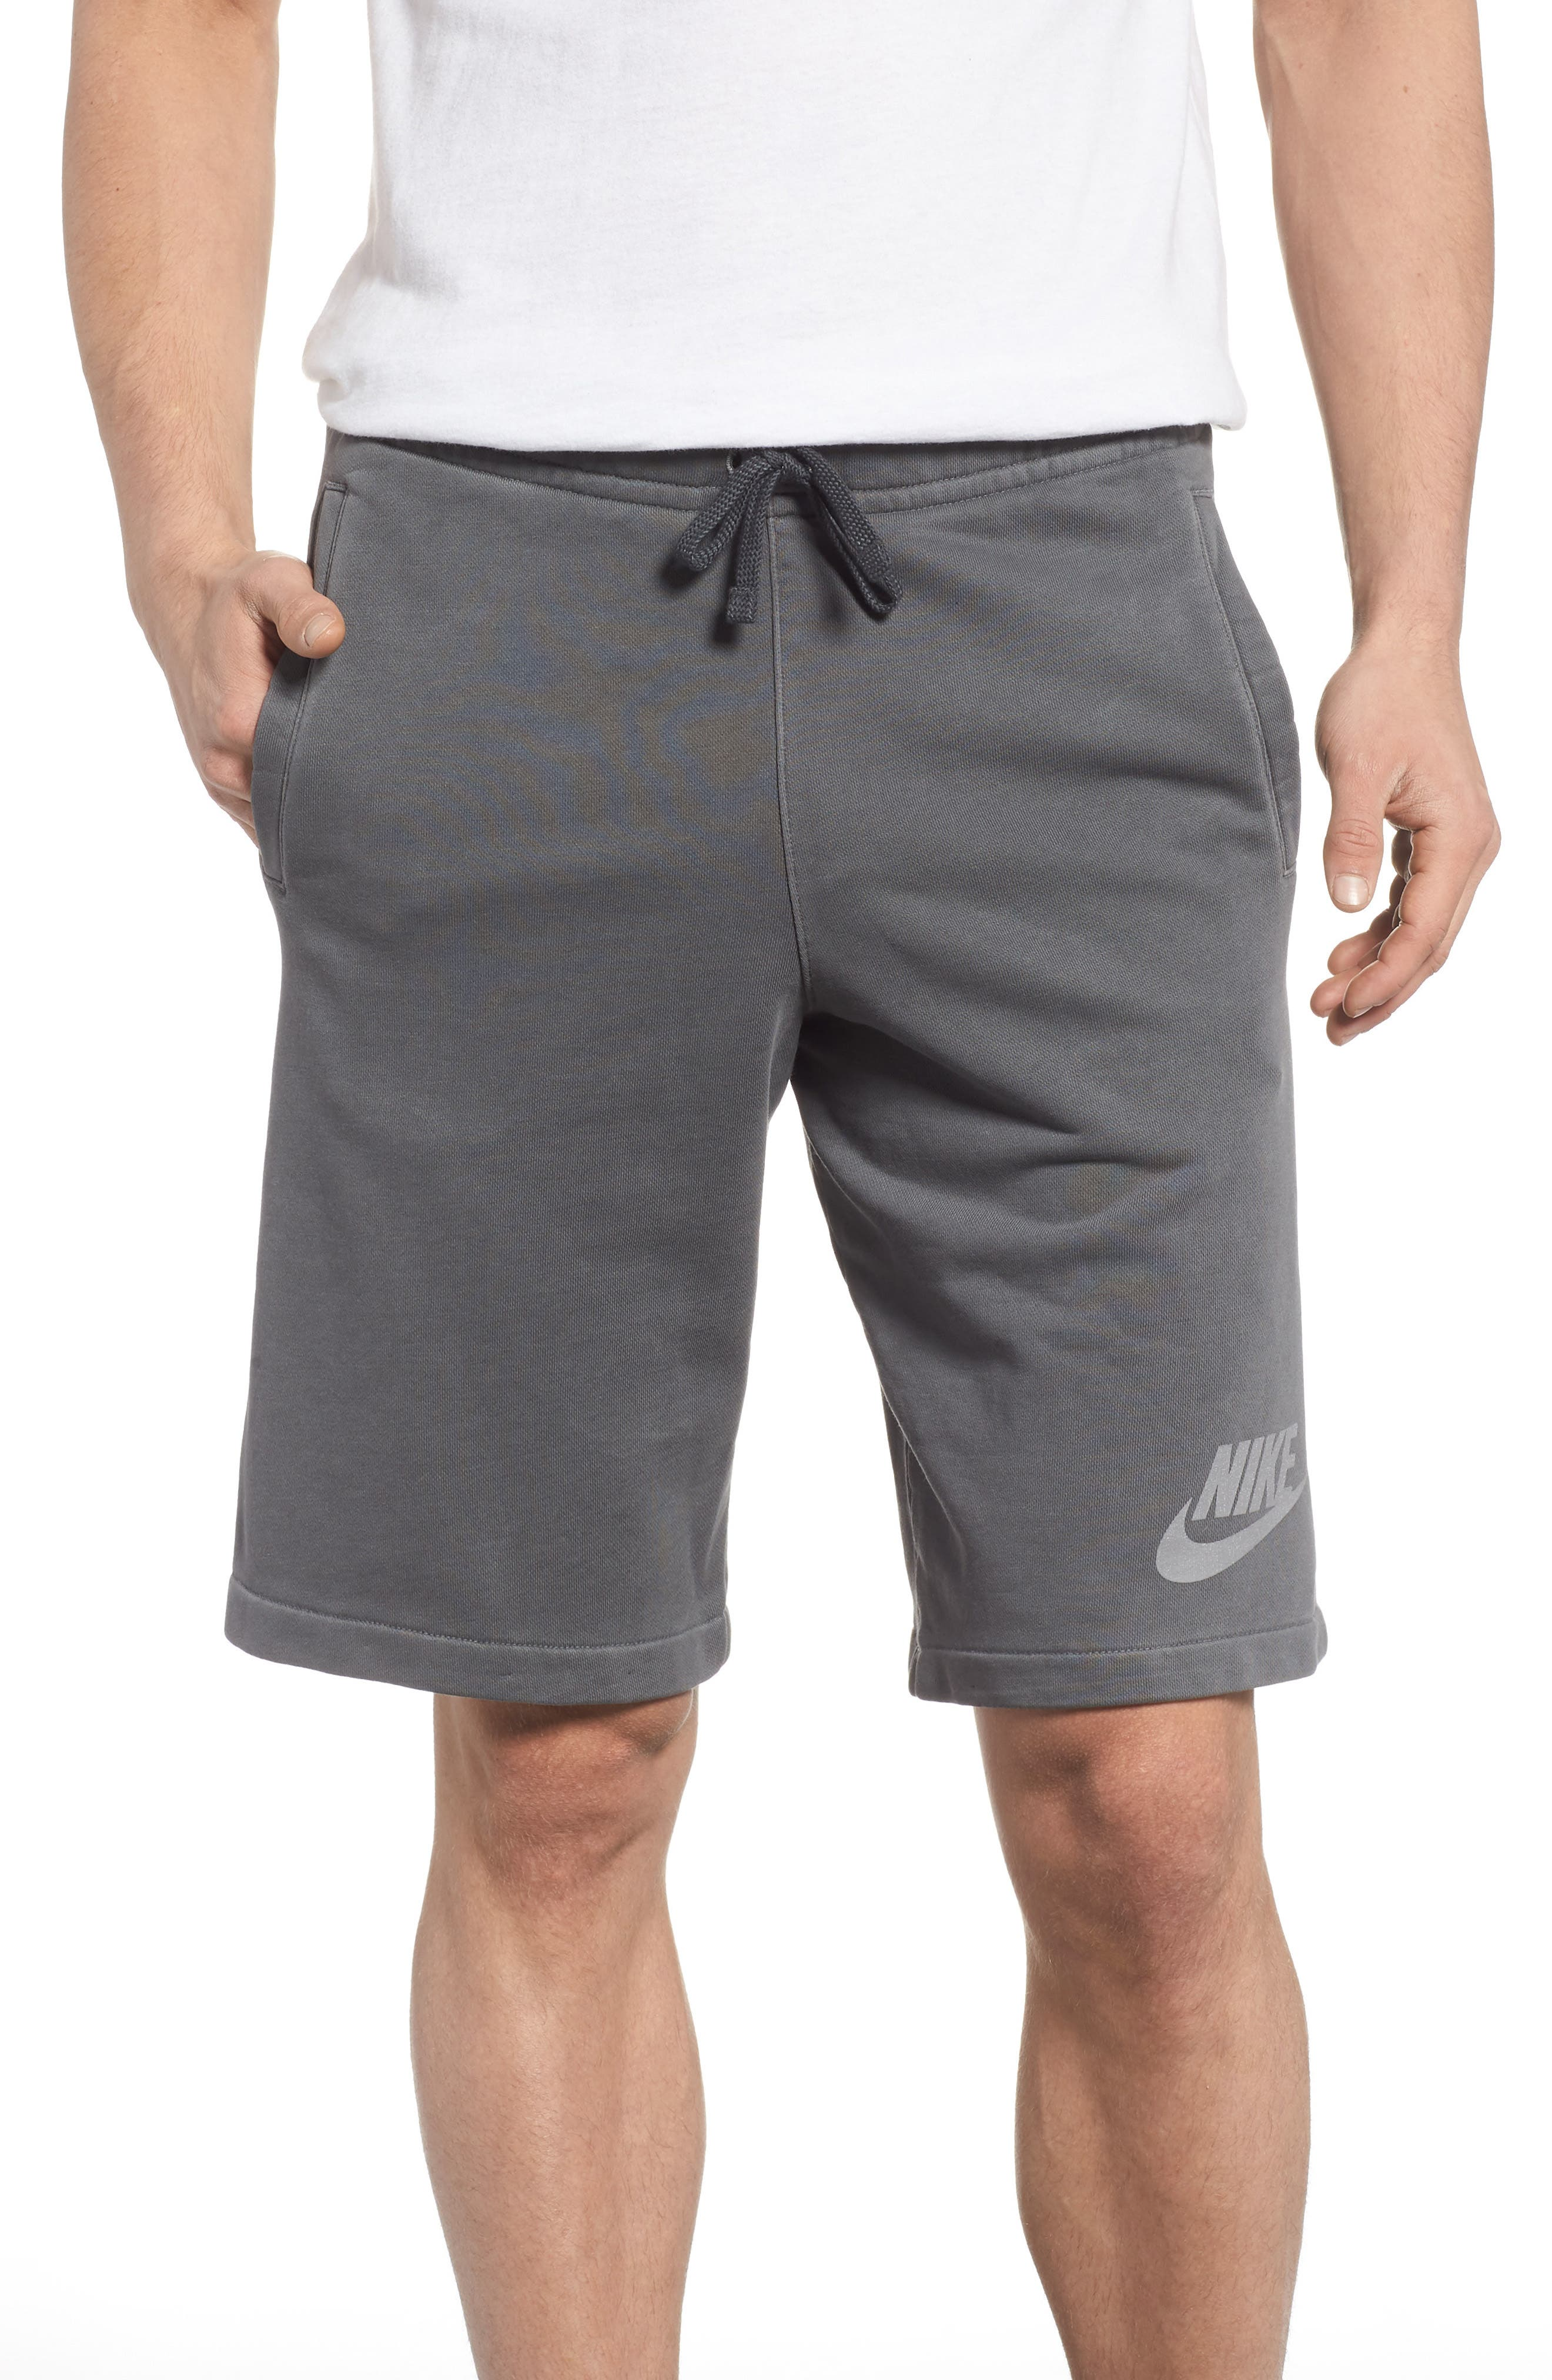 NSW Cotton Blend Shorts,                         Main,                         color, Black/ Anthracite/ Cool Grey